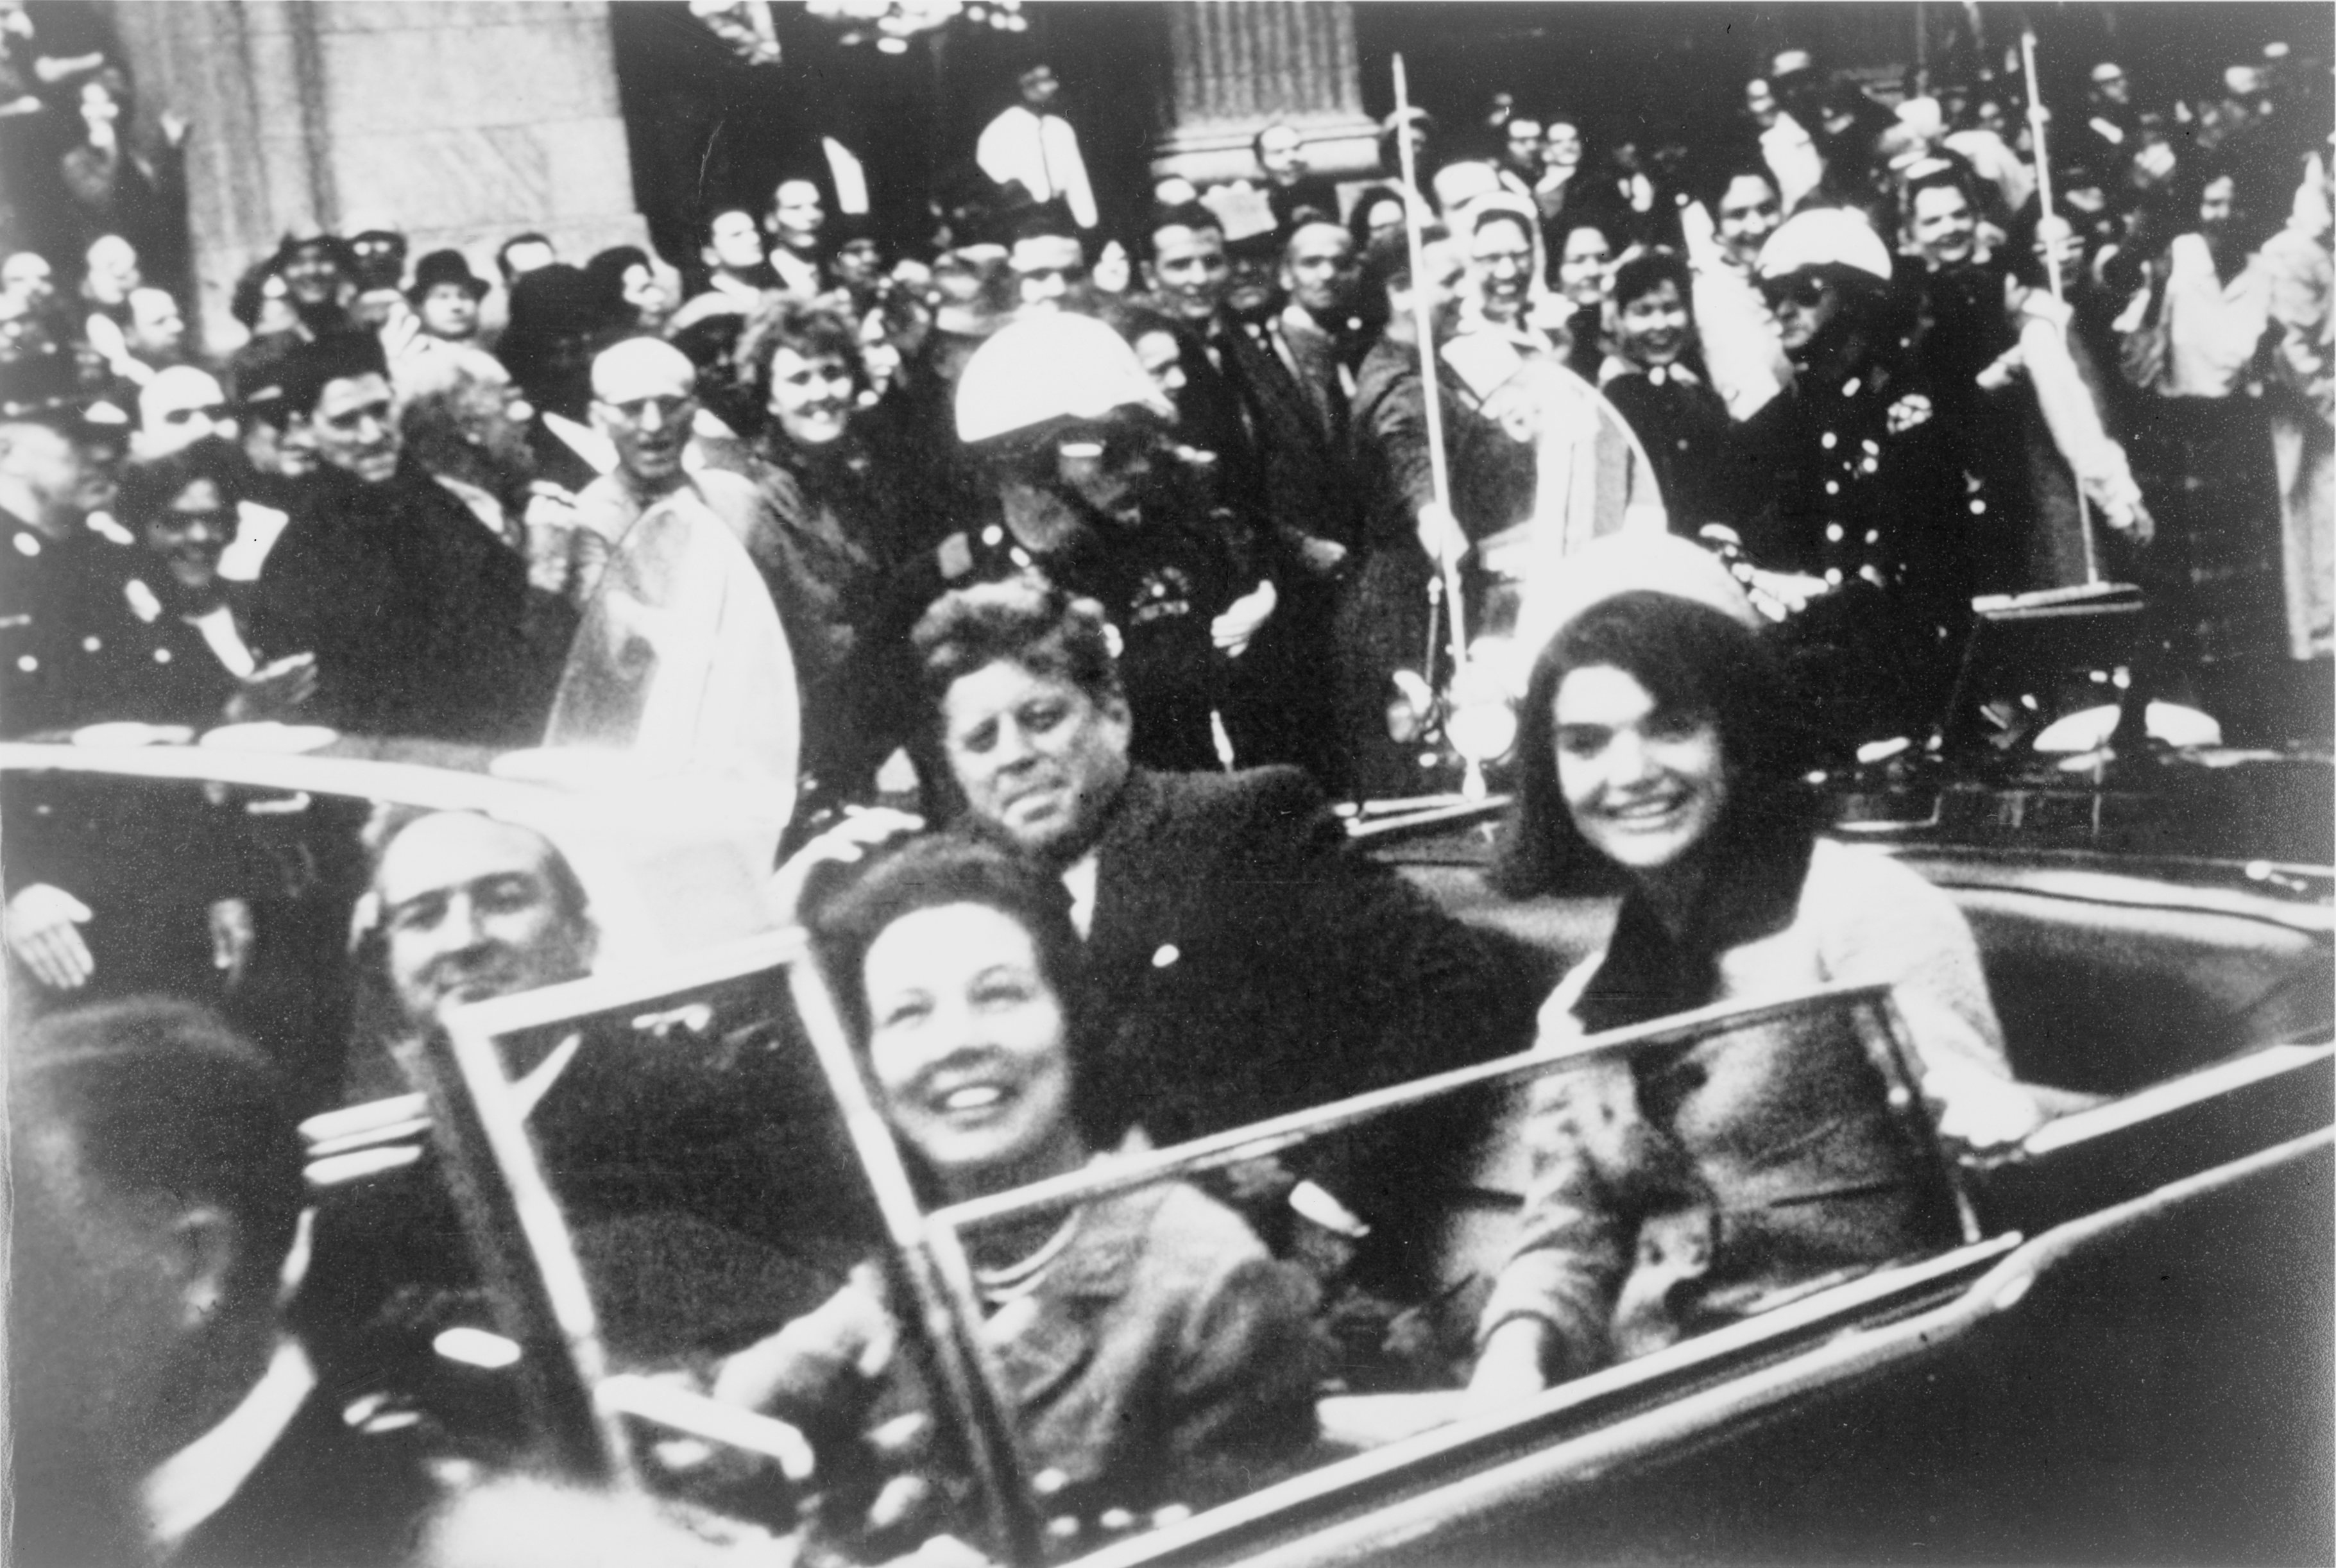 a history of the presidency and assassination of john fitzgerald kennedy The life and times of john f kennedy  the original title of this film is simply john fitzgerald kennedy  edward's history.